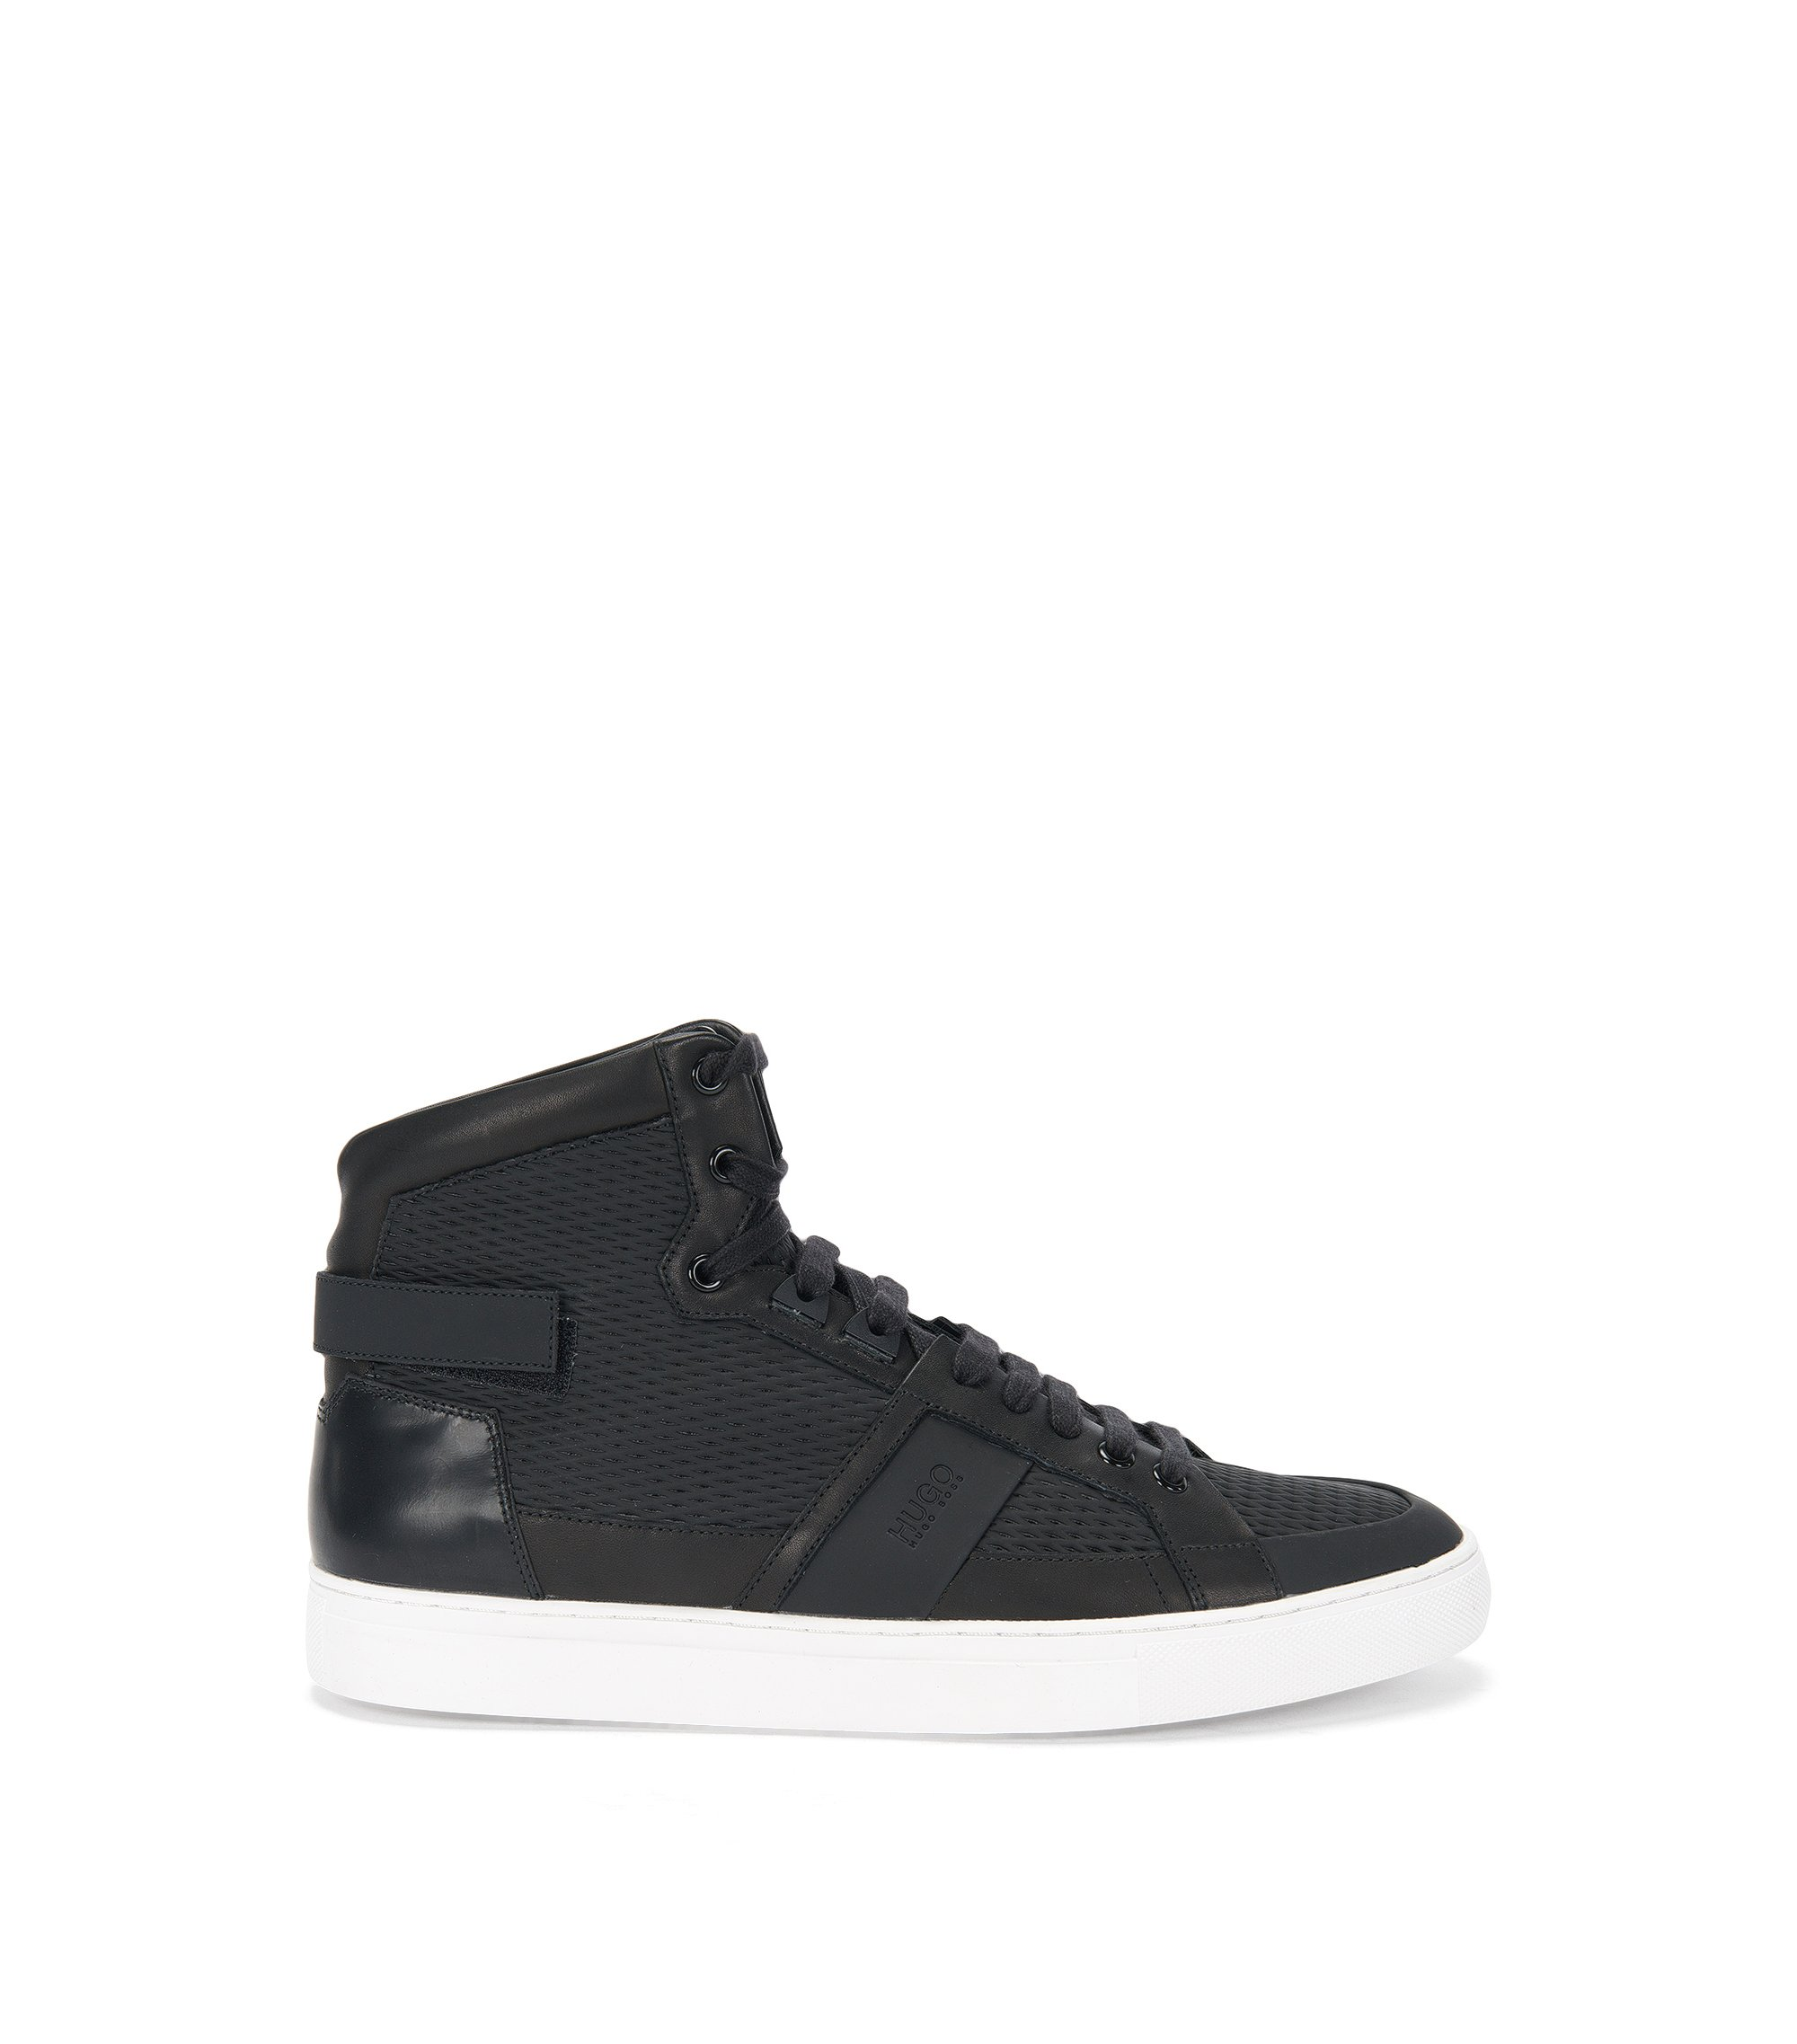 Leather High-Top Sneaker | Futurism Hito ltrb, Black